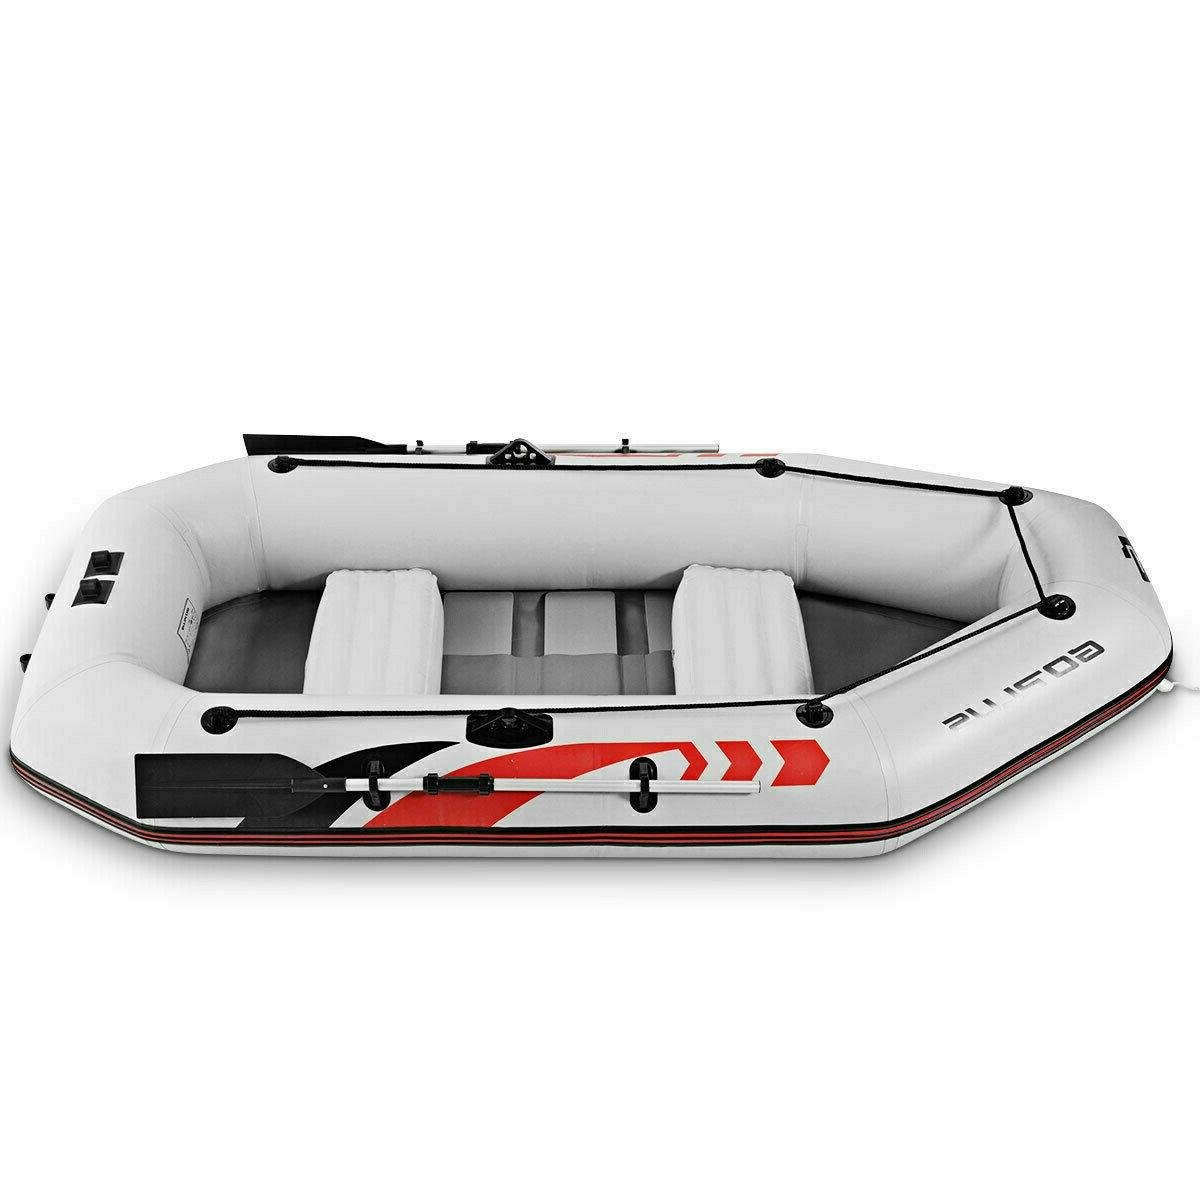 Fishing Inflatable Kayak Person Set with High Pressure Air Pump